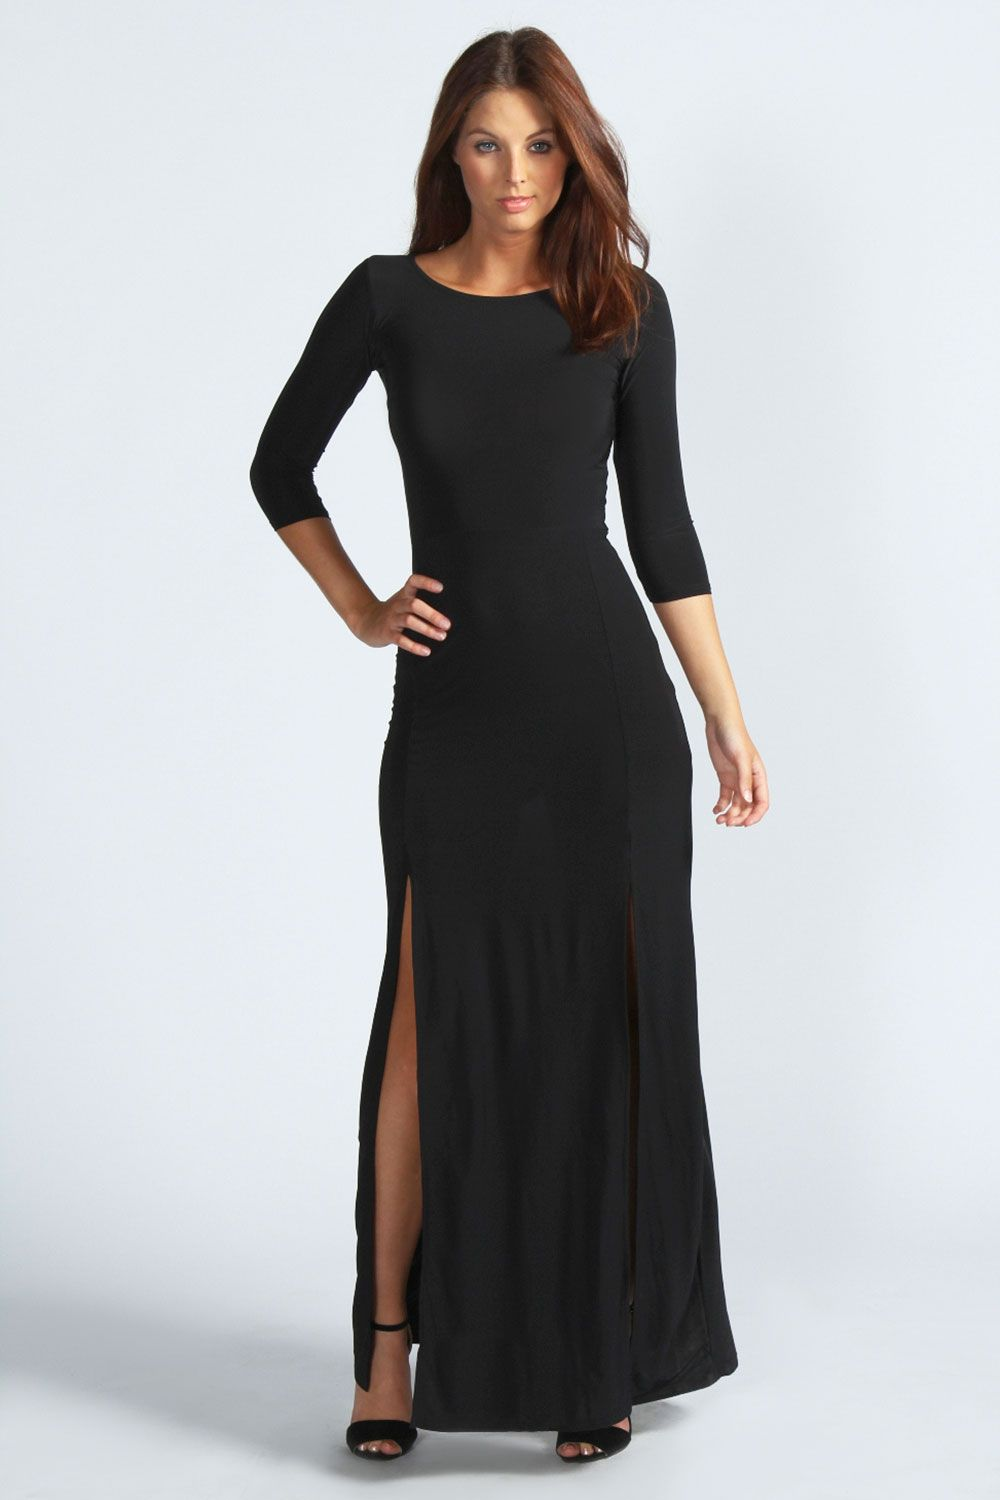 Images of Long Black Maxi Dress With Sleeves - Reikian